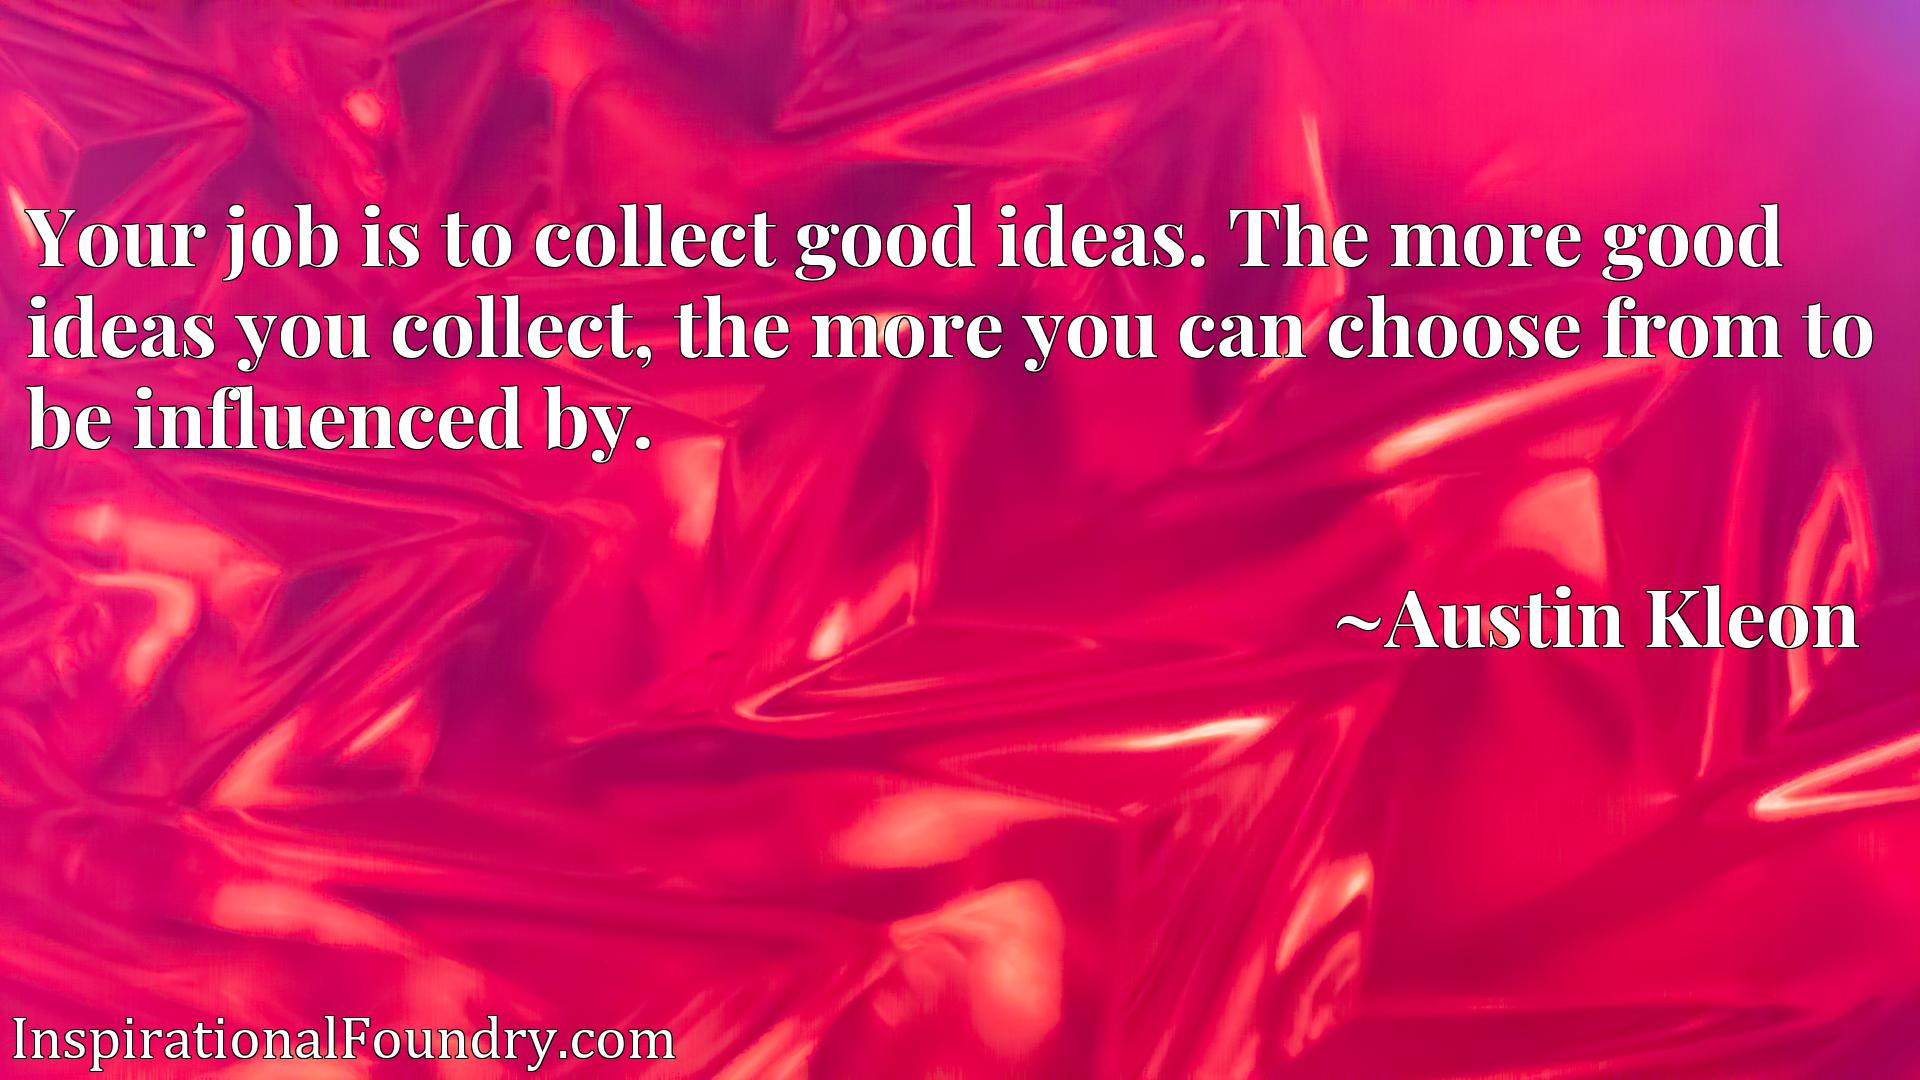 Your job is to collect good ideas. The more good ideas you collect, the more you can choose from to be influenced by.